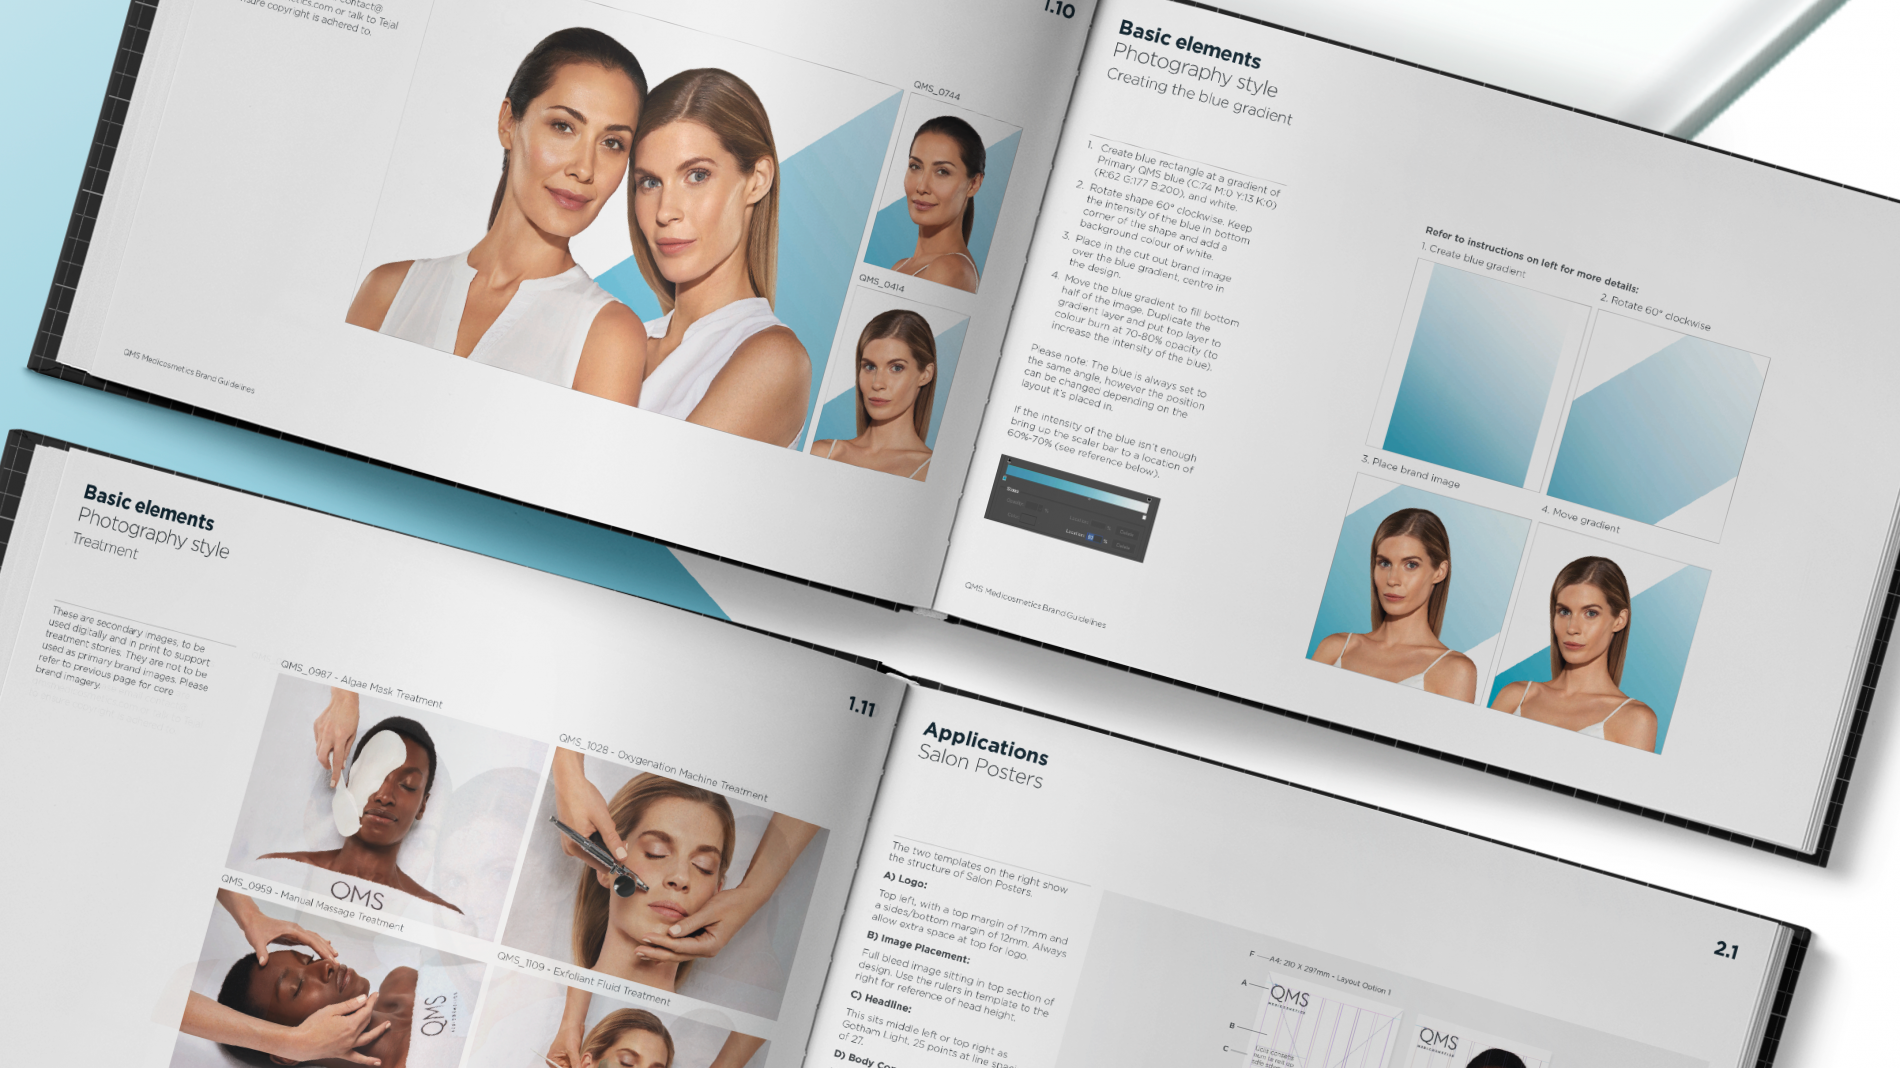 QMS cosmetics brand guidelines